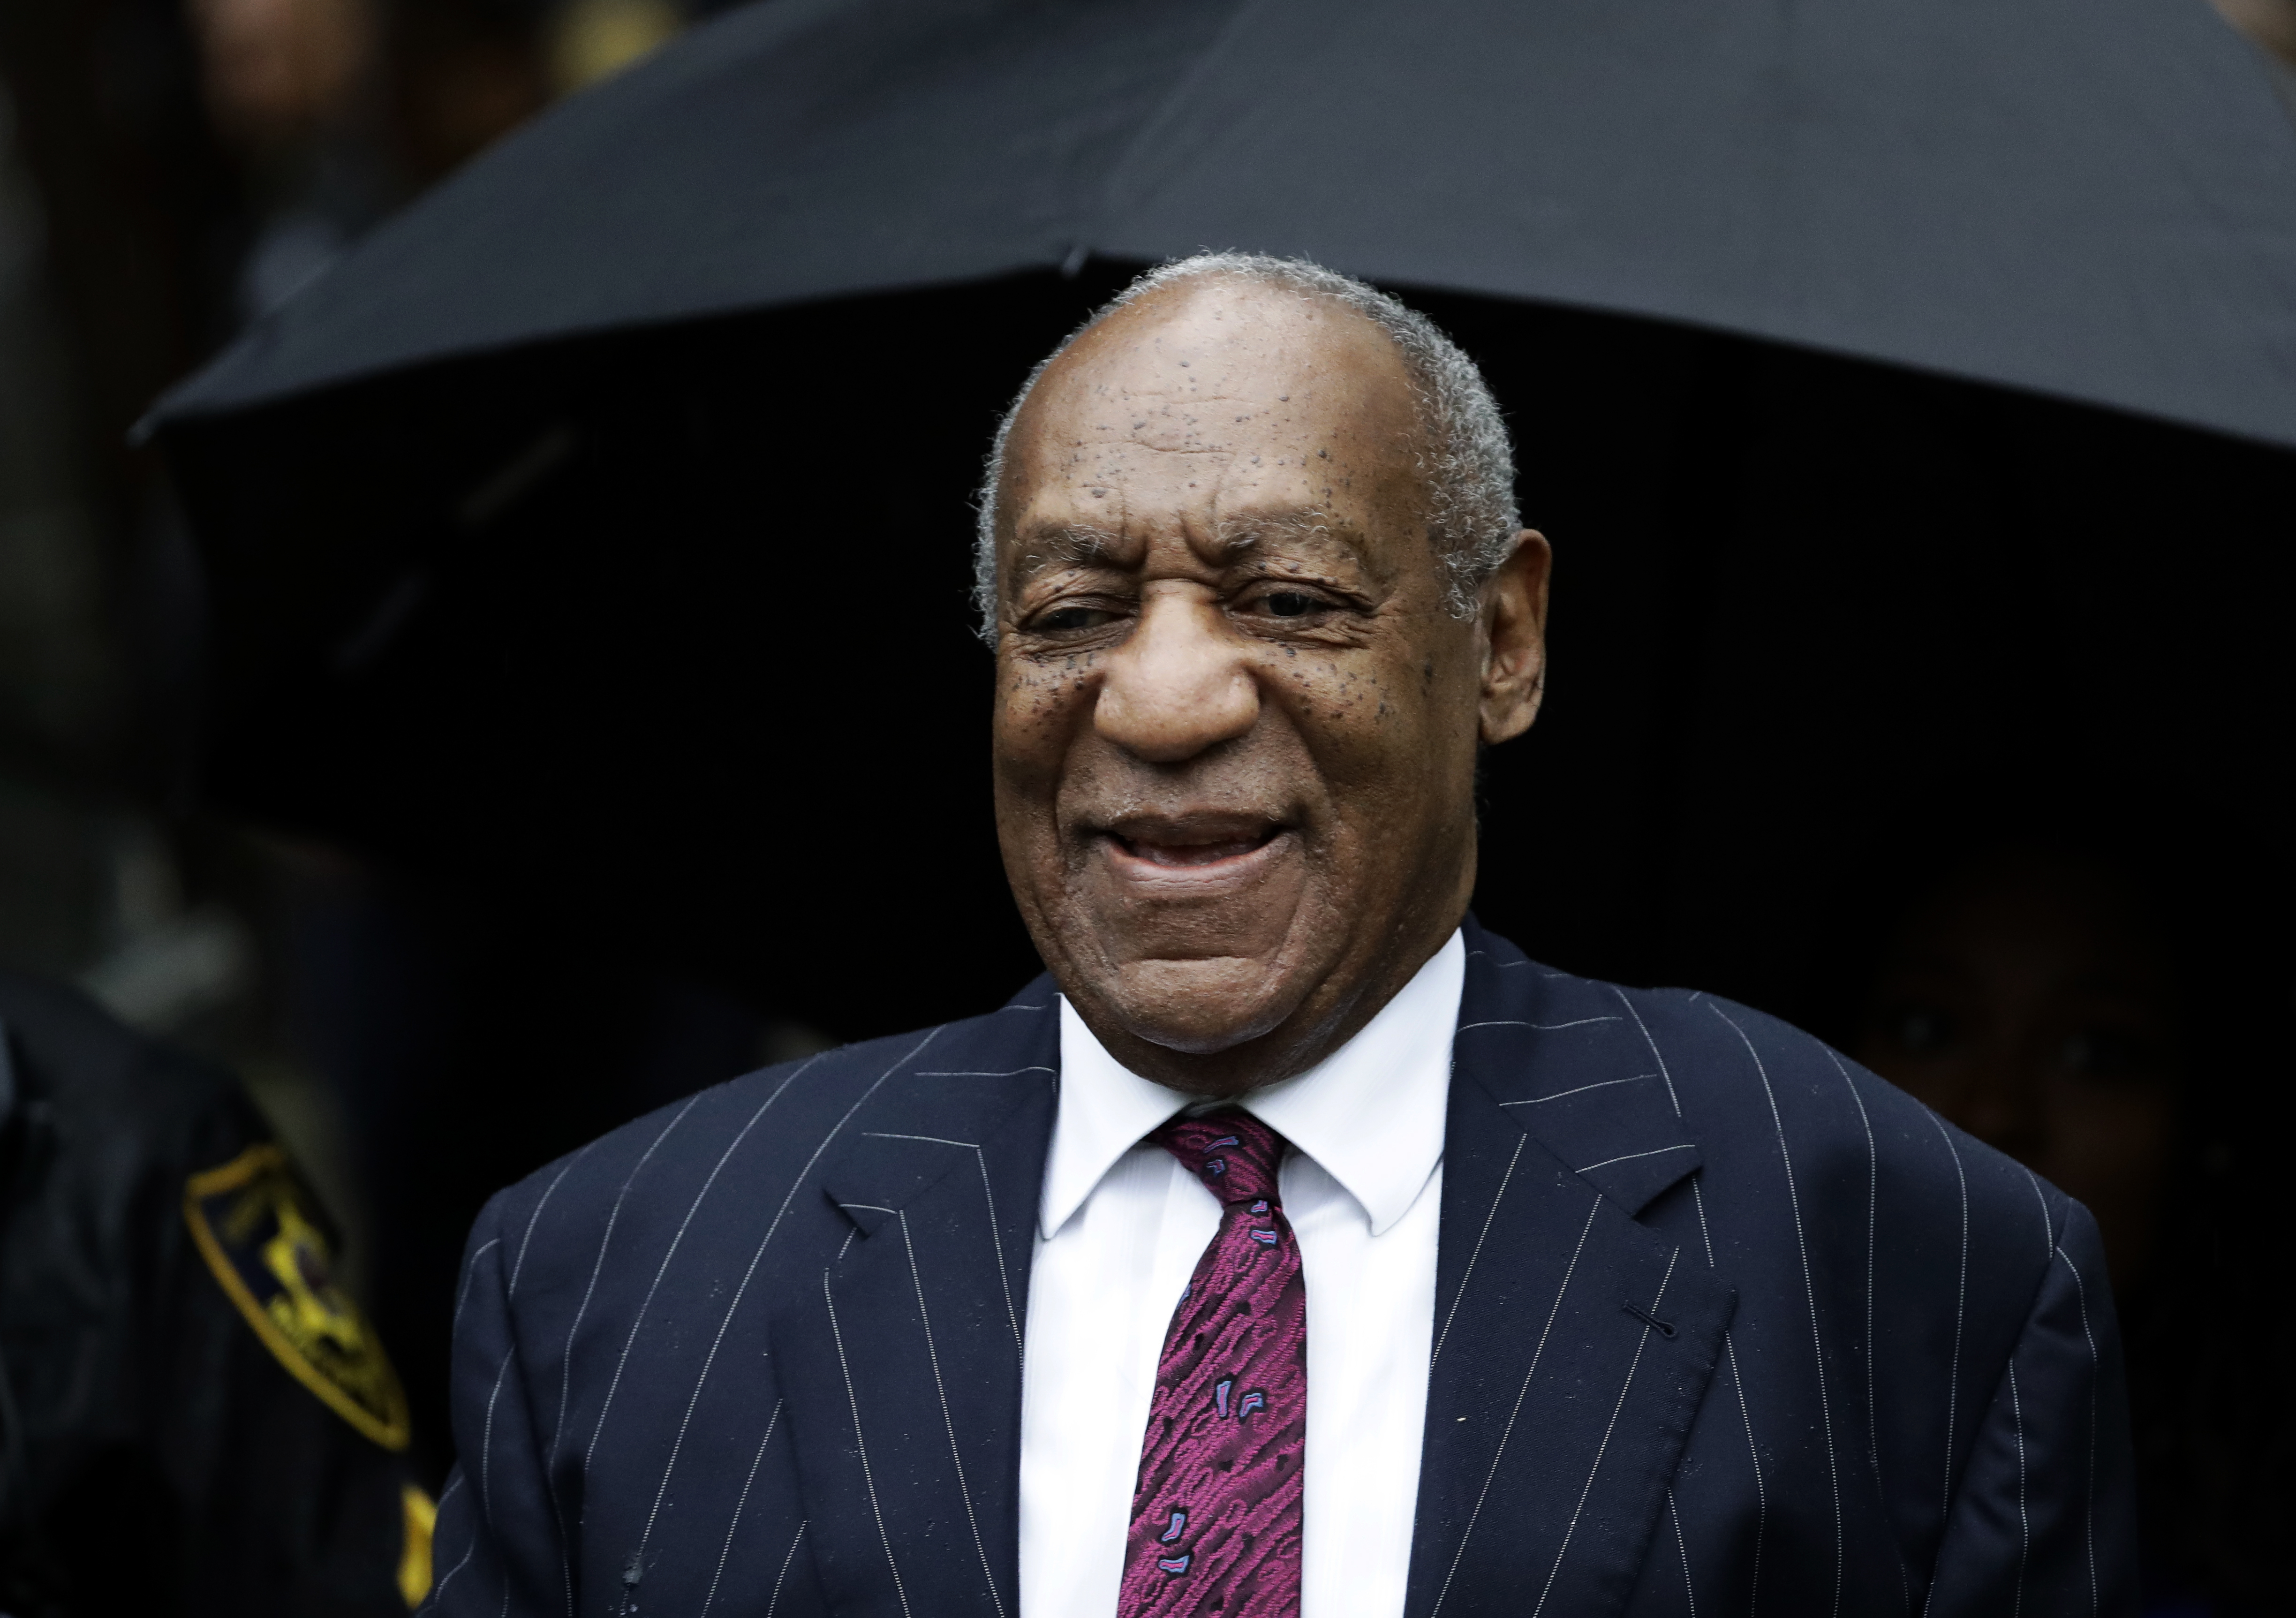 Bill Cosby arrives for his sentencing hearing at the Montgomery County Courthouse, Tuesday, Sept. 25, 2018, in Norristown, Pa. (AP Photo/Matt Slocum) AP